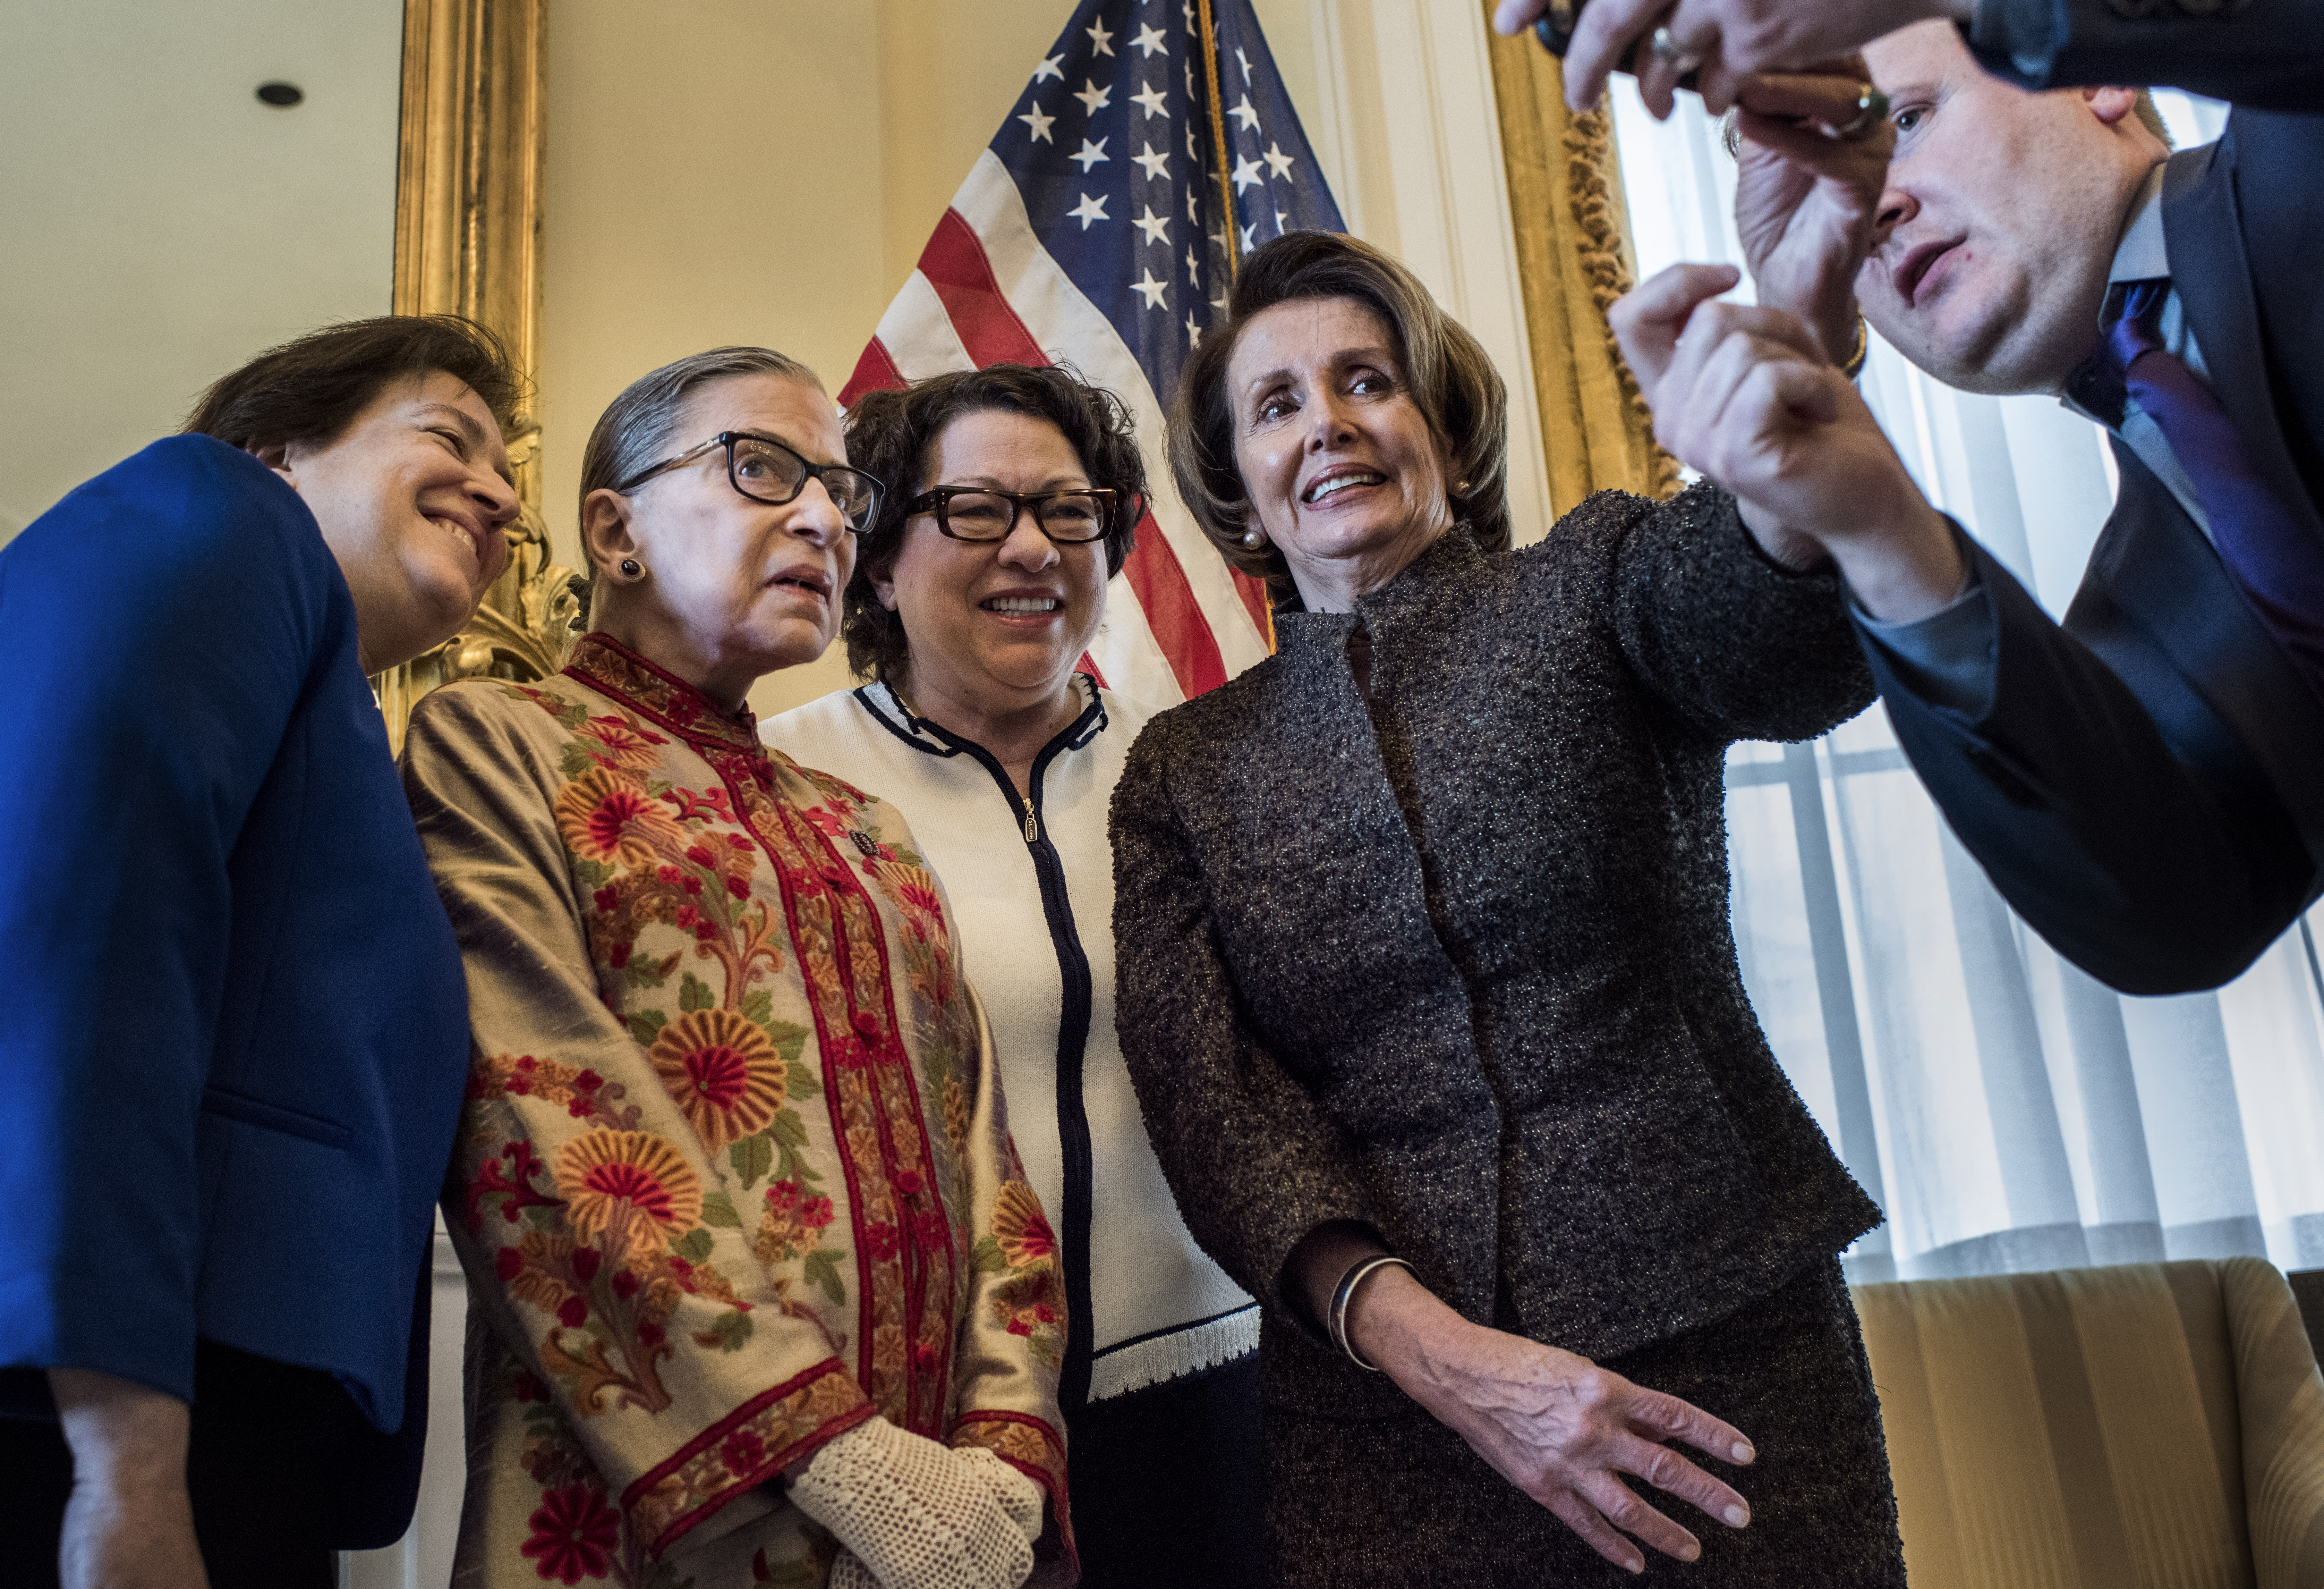 Assisted by staff Drew Hammill, Democratic Leader Nancy Pelosi takes a selfie with Associate Justice of the U.S. Supreme Court Elena Kagan, Associate Justice of the U.S. Supreme Court Ruth Bader Ginsburg, and Associate Justice of the U.S. Supreme Court Sonia Sotomayor at the US Capitol before a Womens History Month Reception Honoring the Women Justices of the U.S. Supreme Court,